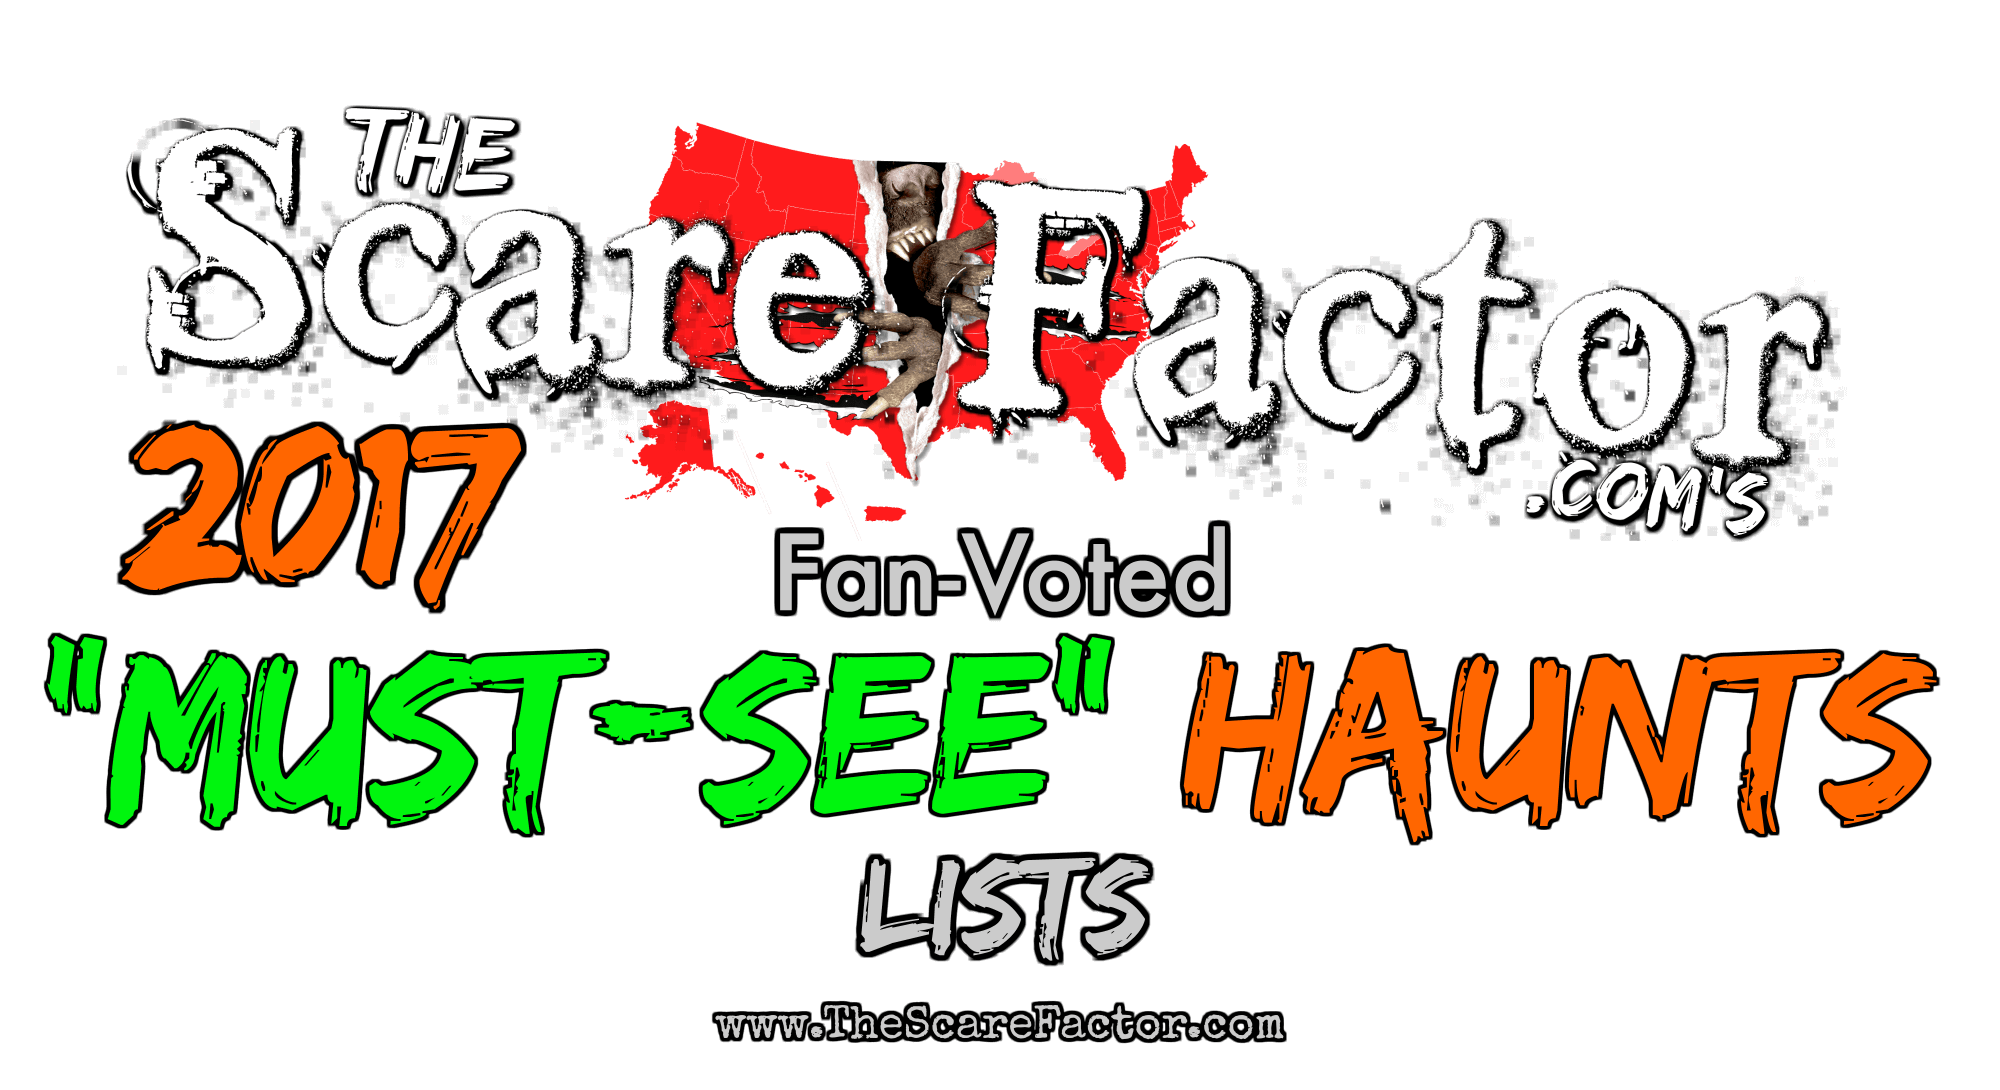 Top Michigan Haunted Houses Lists